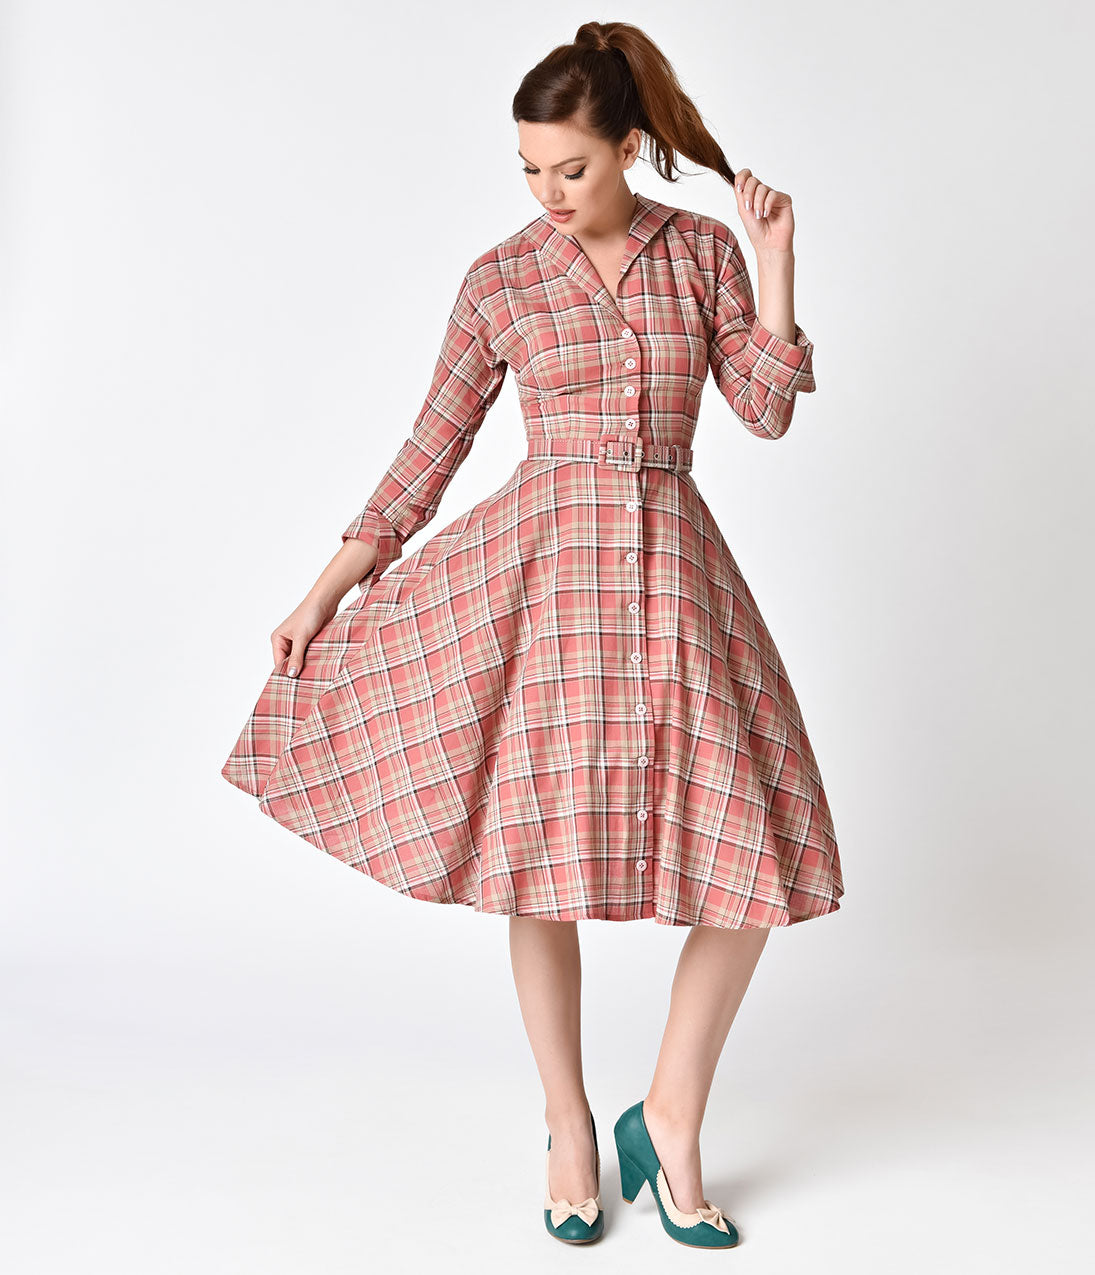 1940s & 1950s Style Shirt Dresses, Shirtwaist Dresses Unique Vintage 1950S Style Pink Plaid Cotton Sleeved Brooklyn Shirtdress $98.00 AT vintagedancer.com